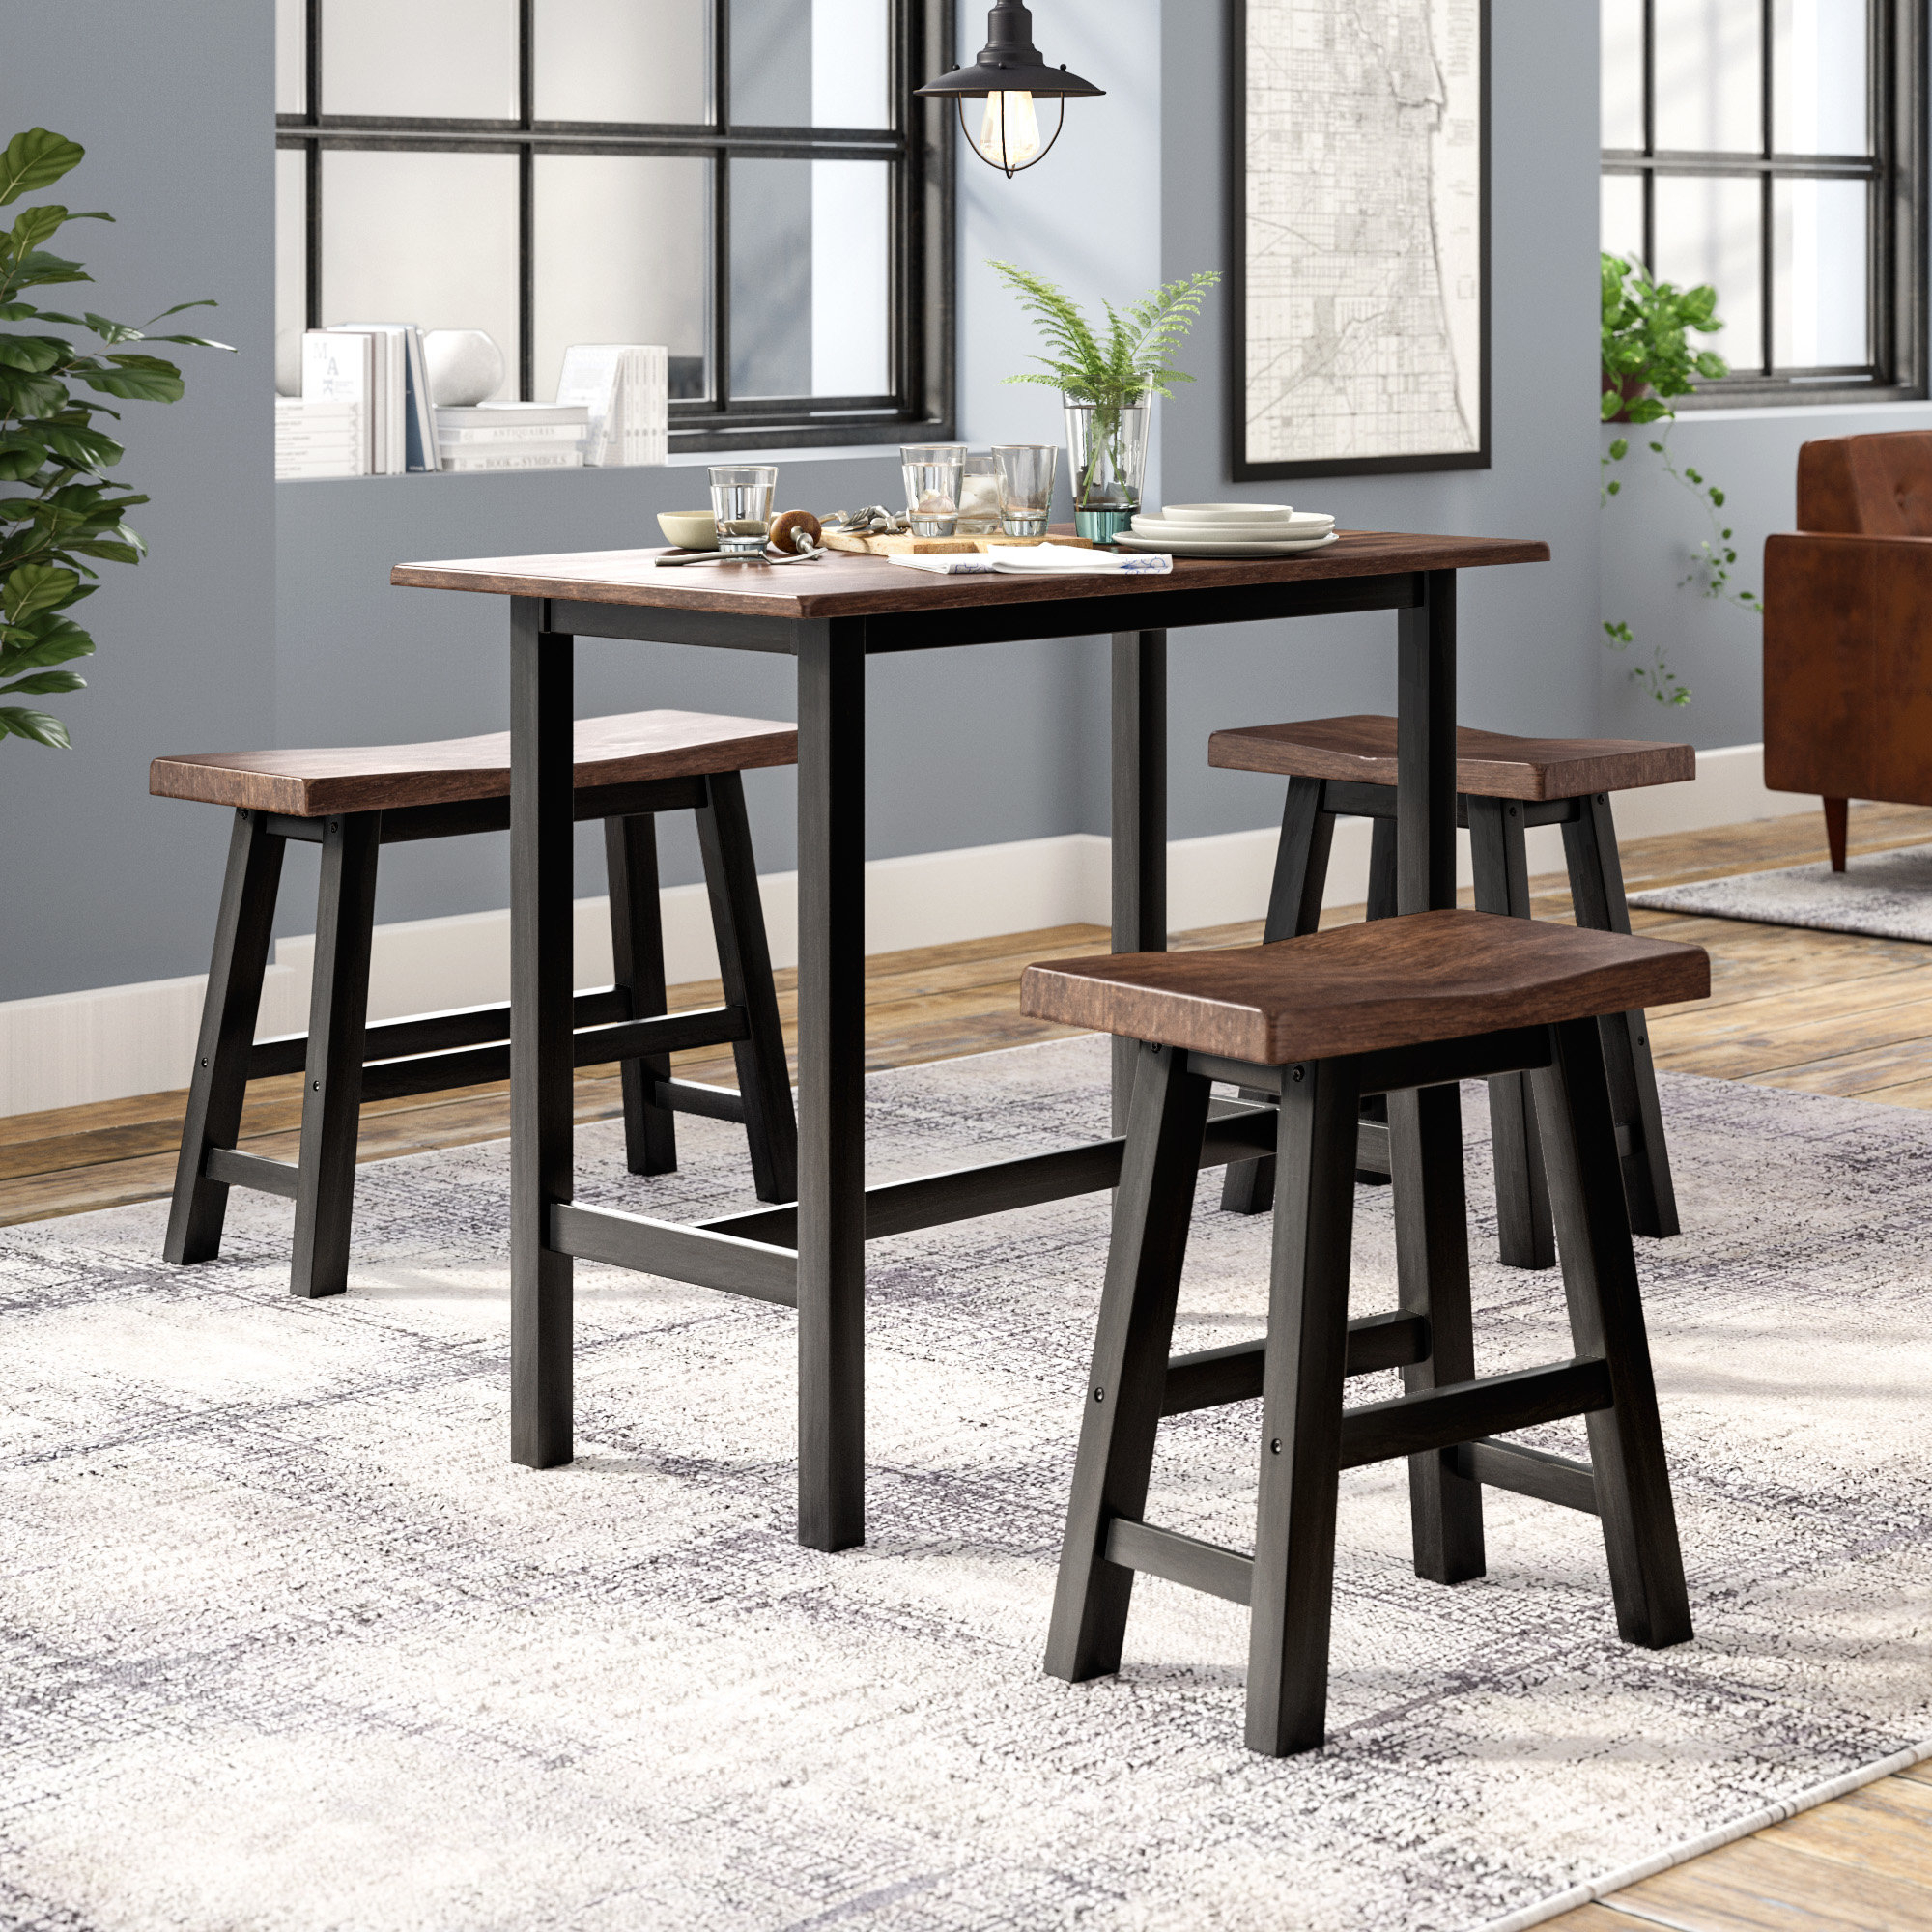 Chelsey 4 Piece Dining Set Throughout Recent Berrios 3 Piece Counter Height Dining Sets (Photo 7 of 20)